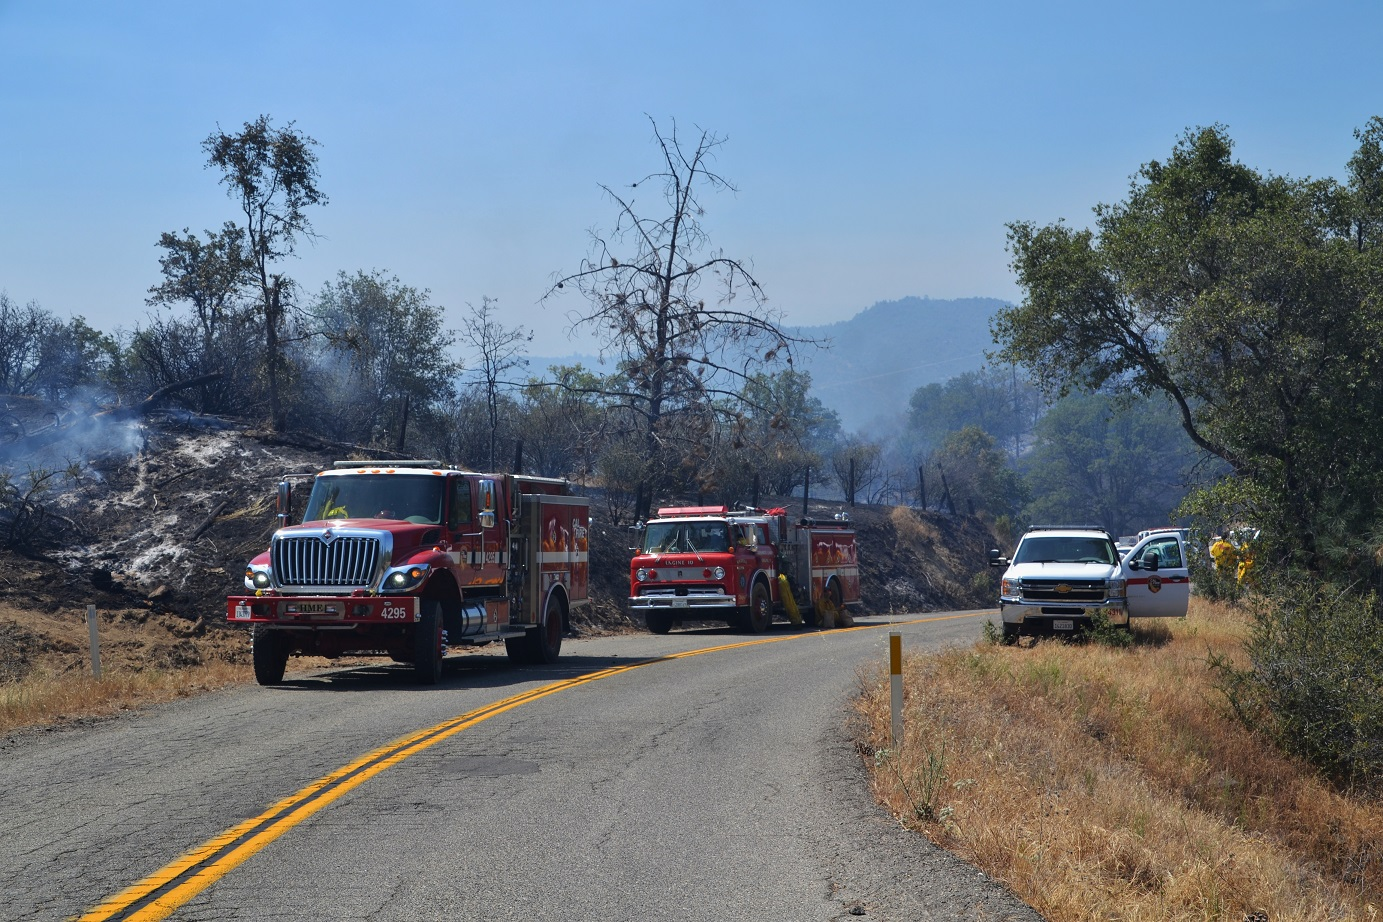 Local engines on Corrine Fire - photo by Gina Clugston